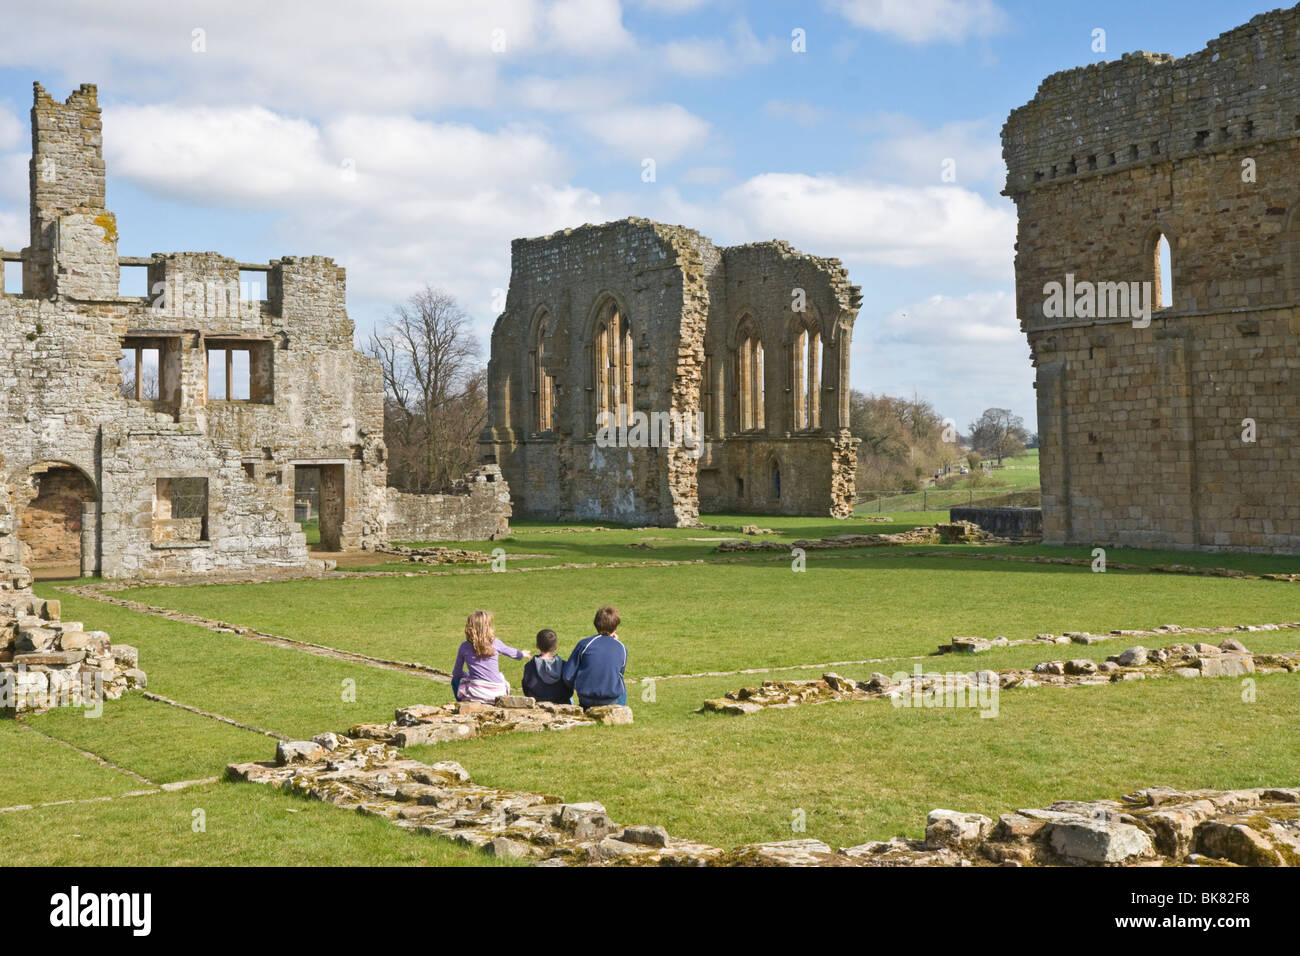 The ruins of Egglestone Abbey, Teesdale, County Durham, UK - Stock Image